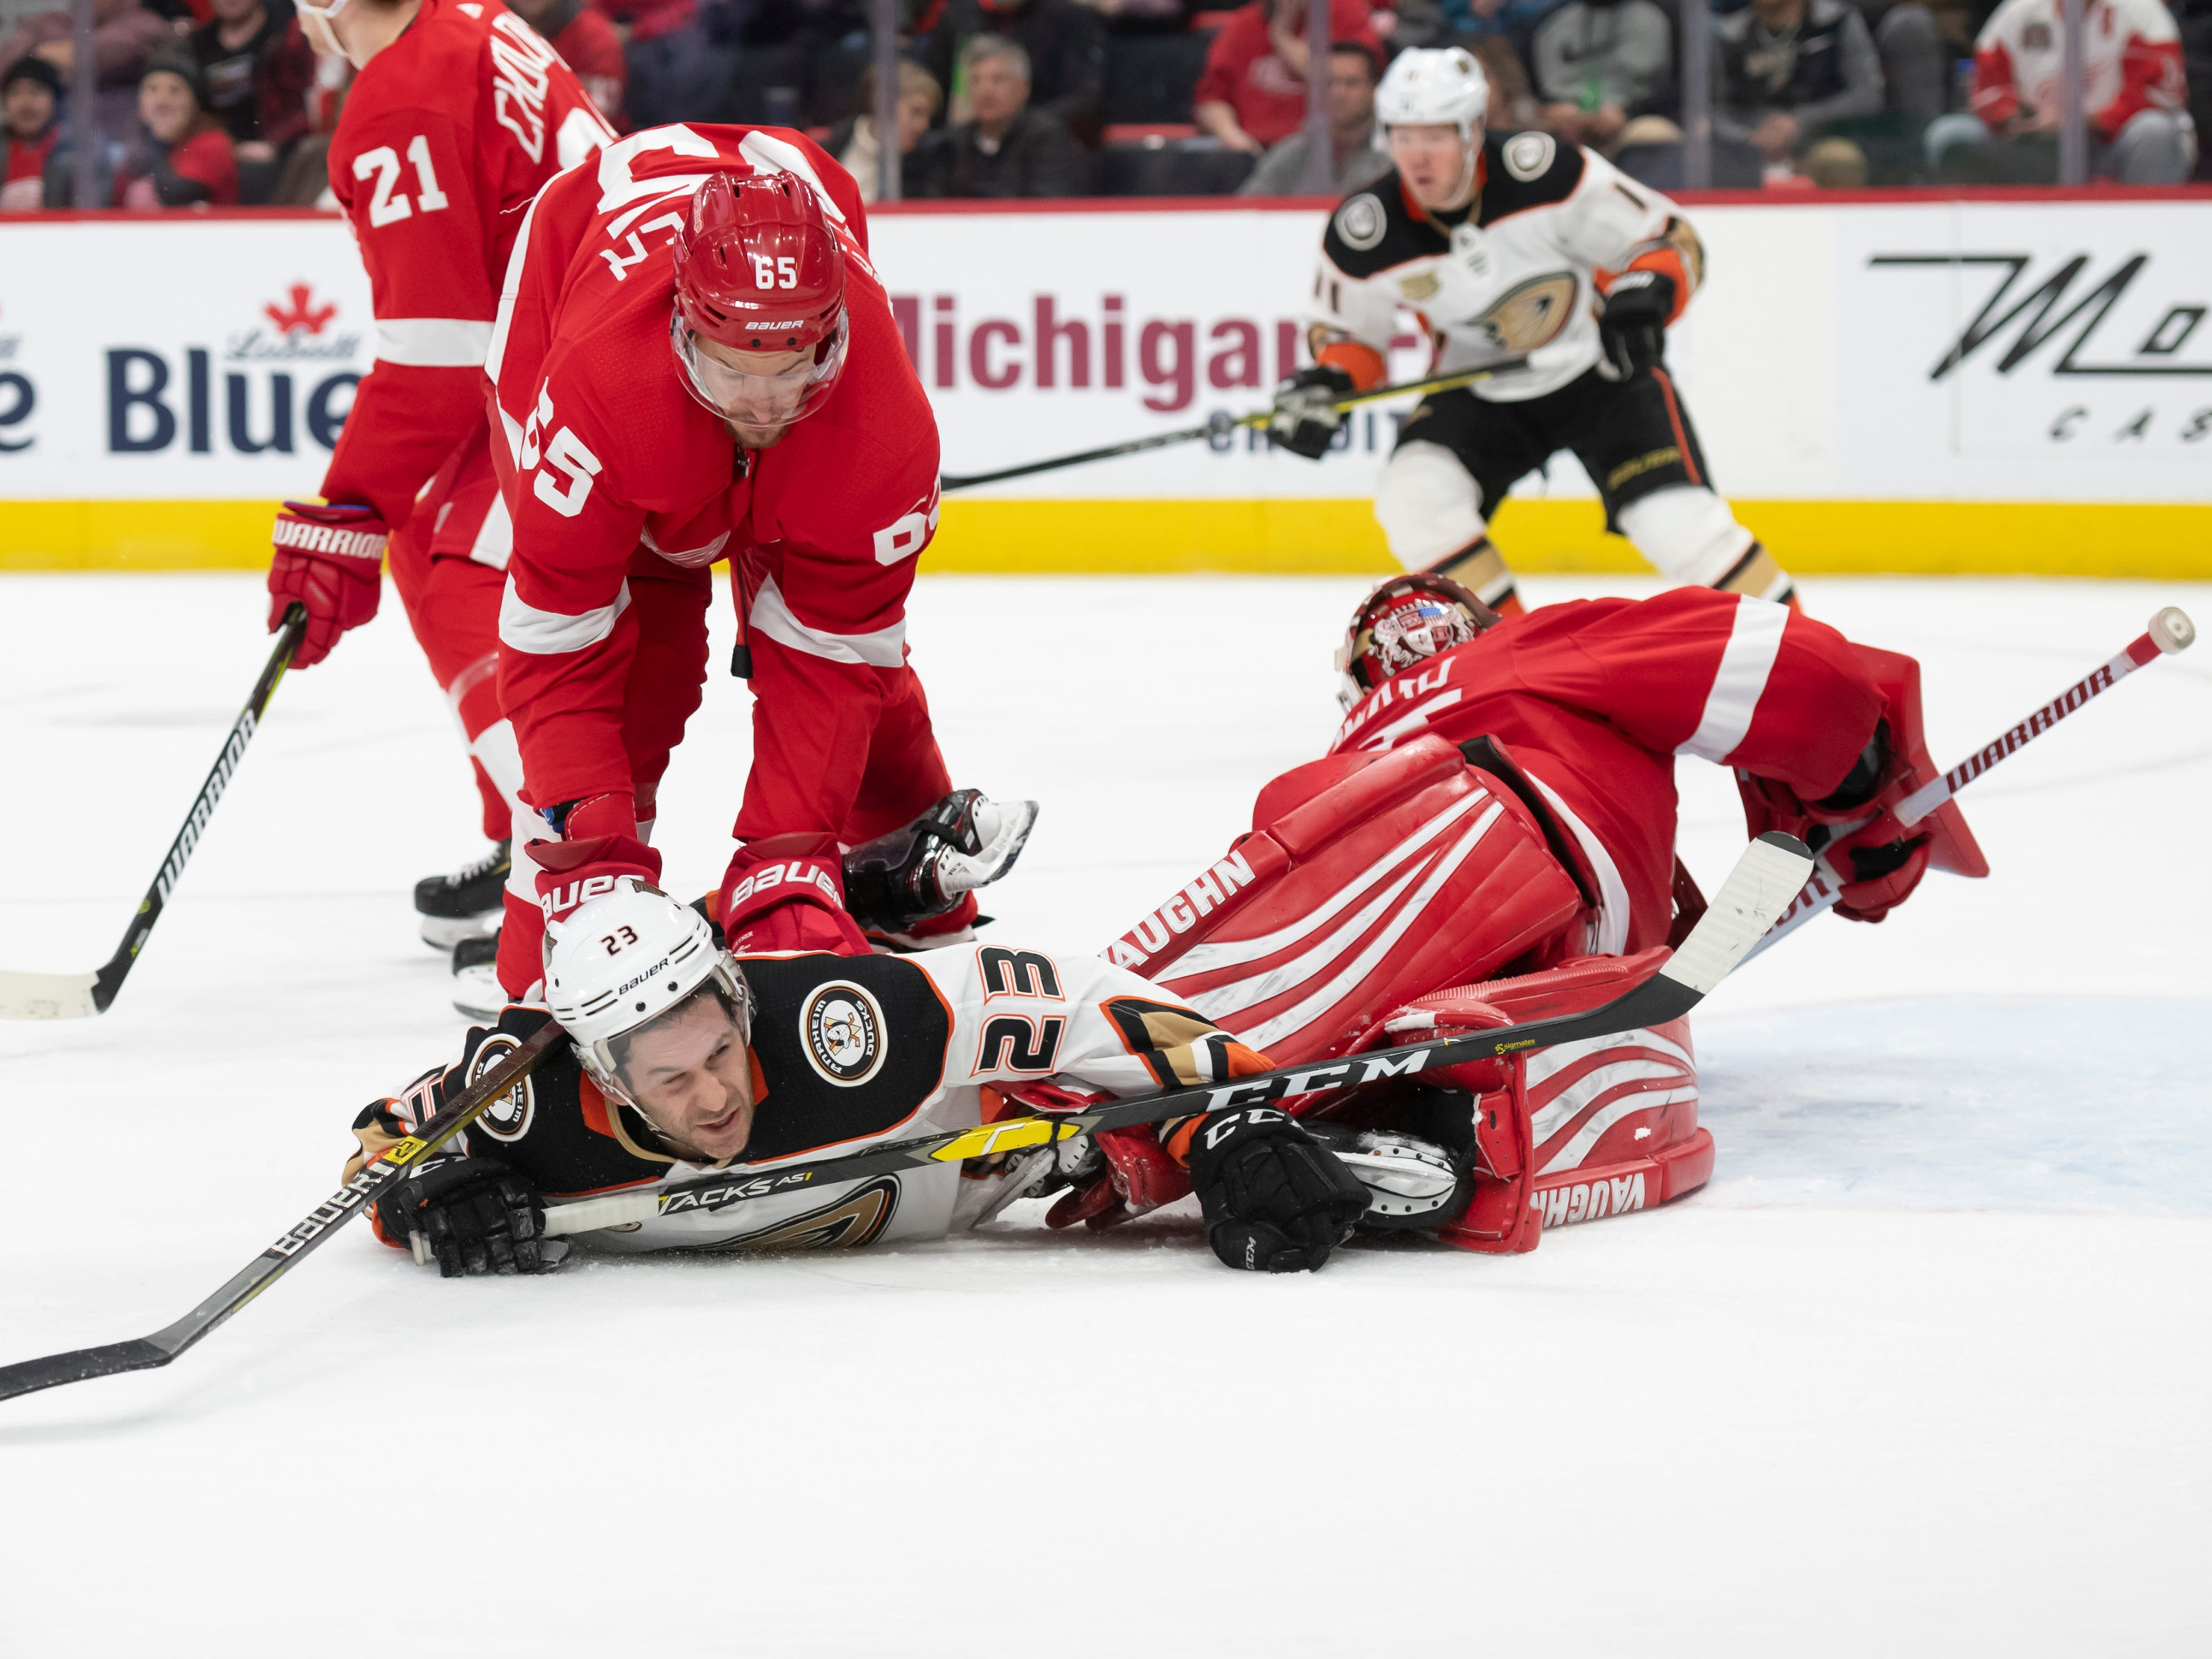 Anaheim center Brian Gibbons is pushed to the ice by Detroit defenseman Danny DeKeyser in the second period.